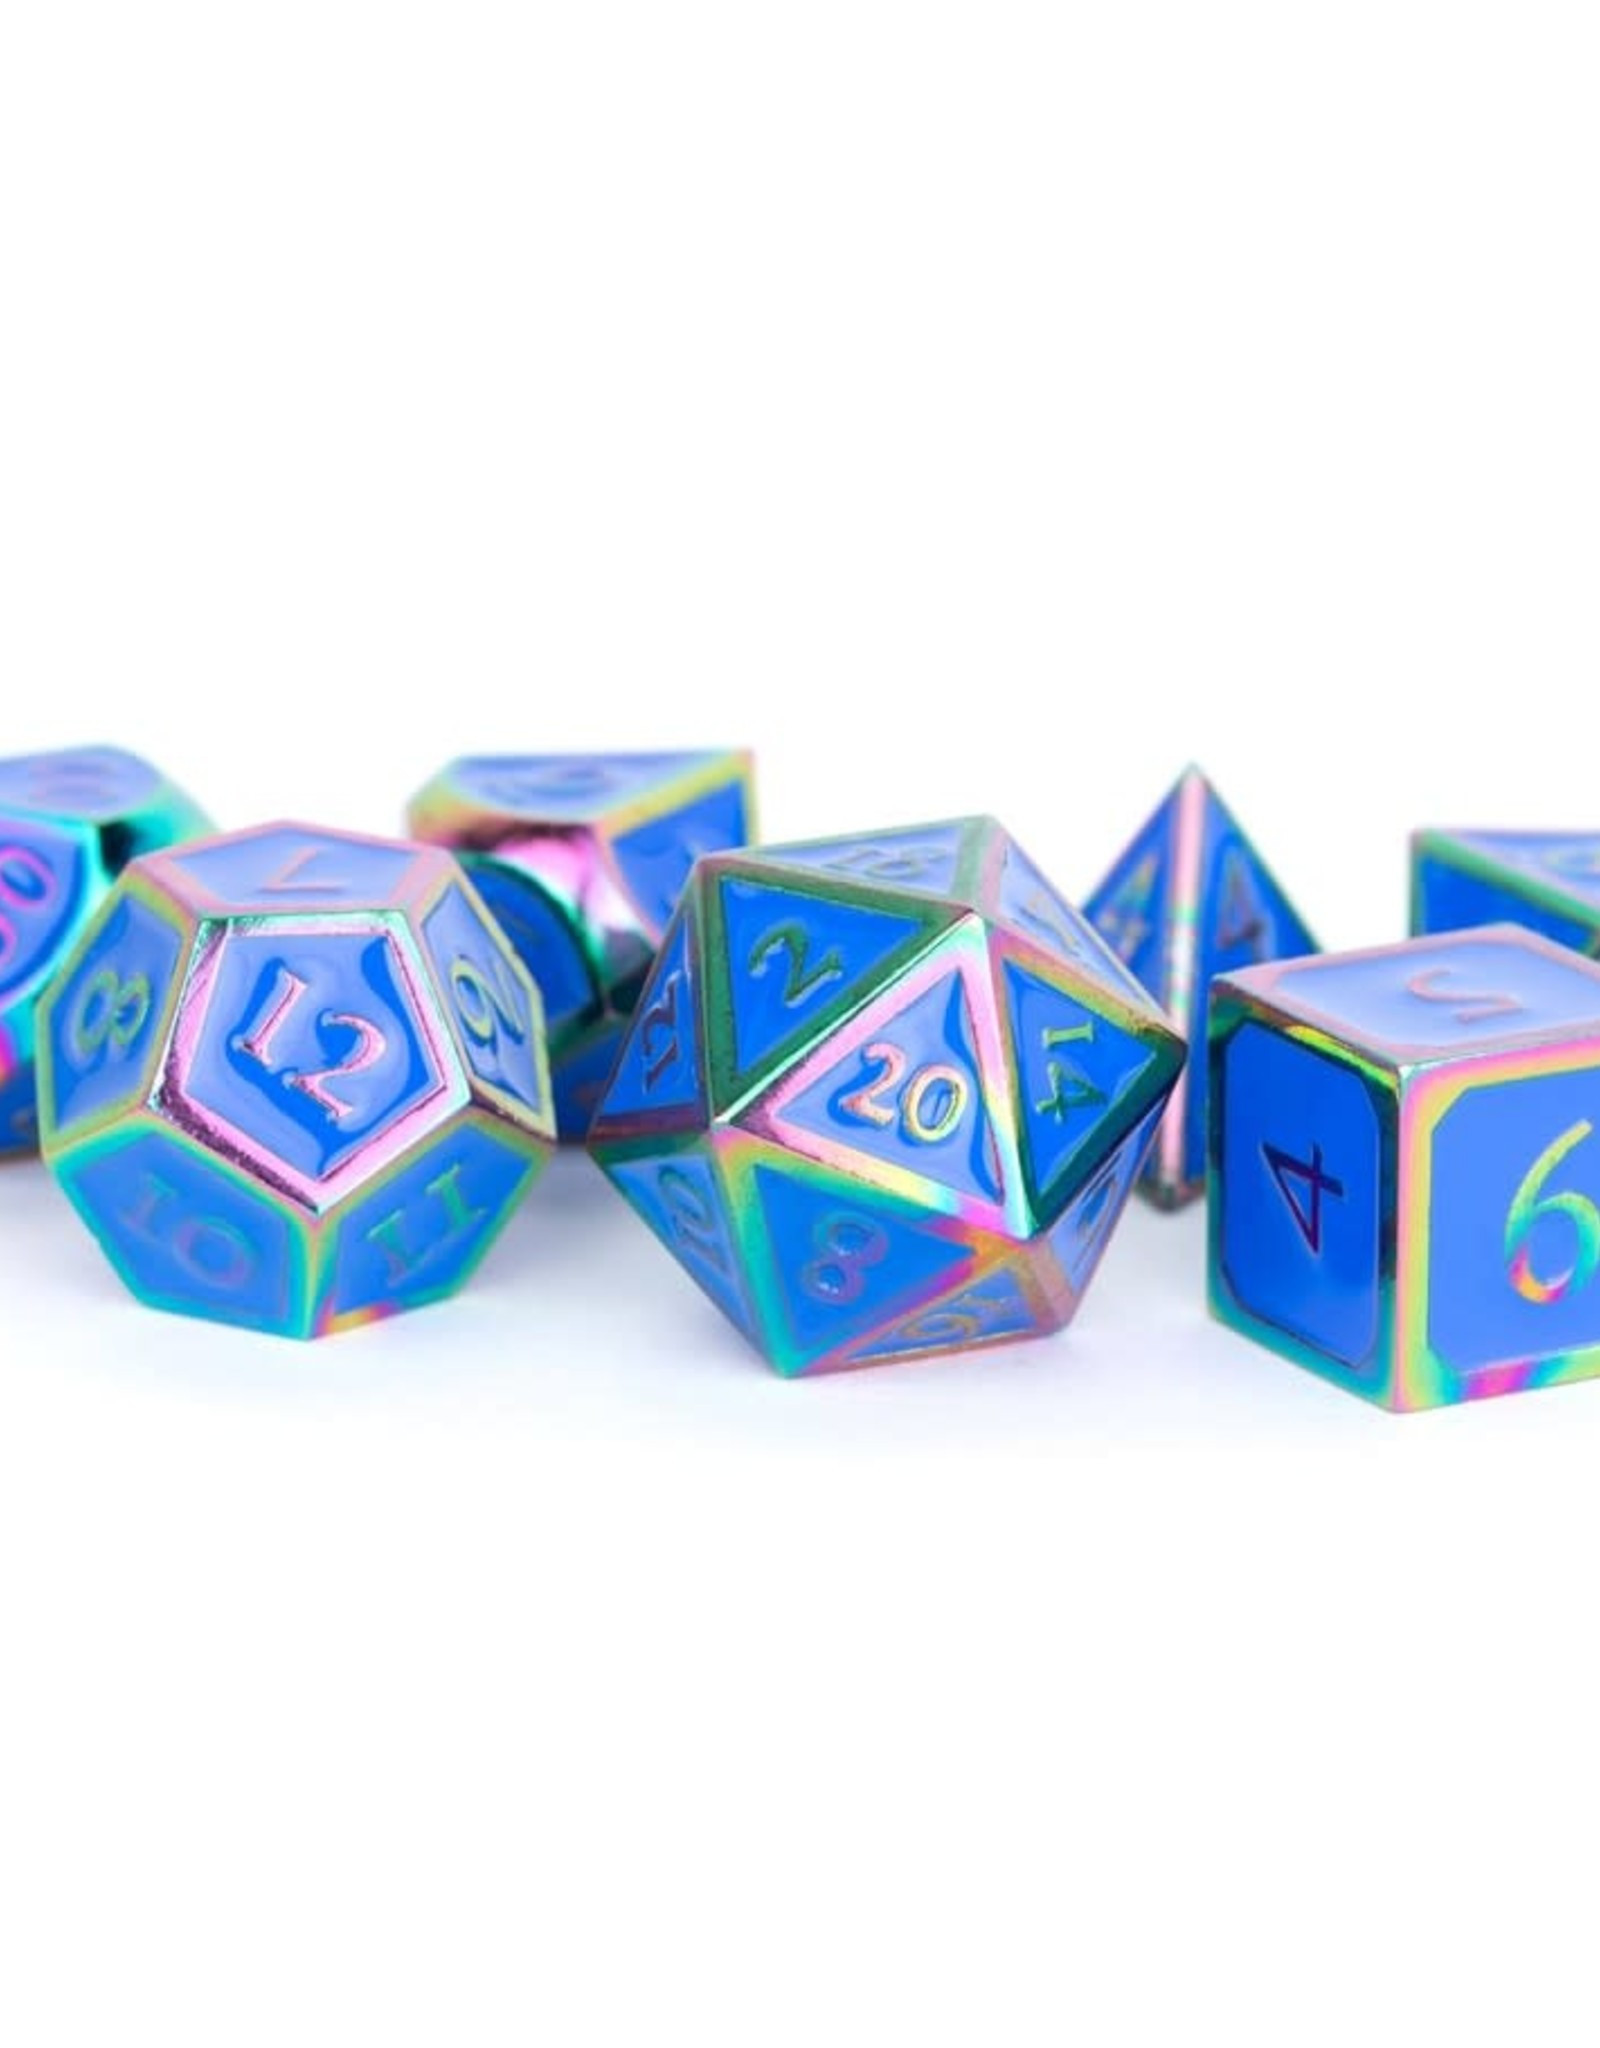 Metallic Dice Games Polyhedral Dice Set: 16mm Metal Rainbow with Blue Enamel